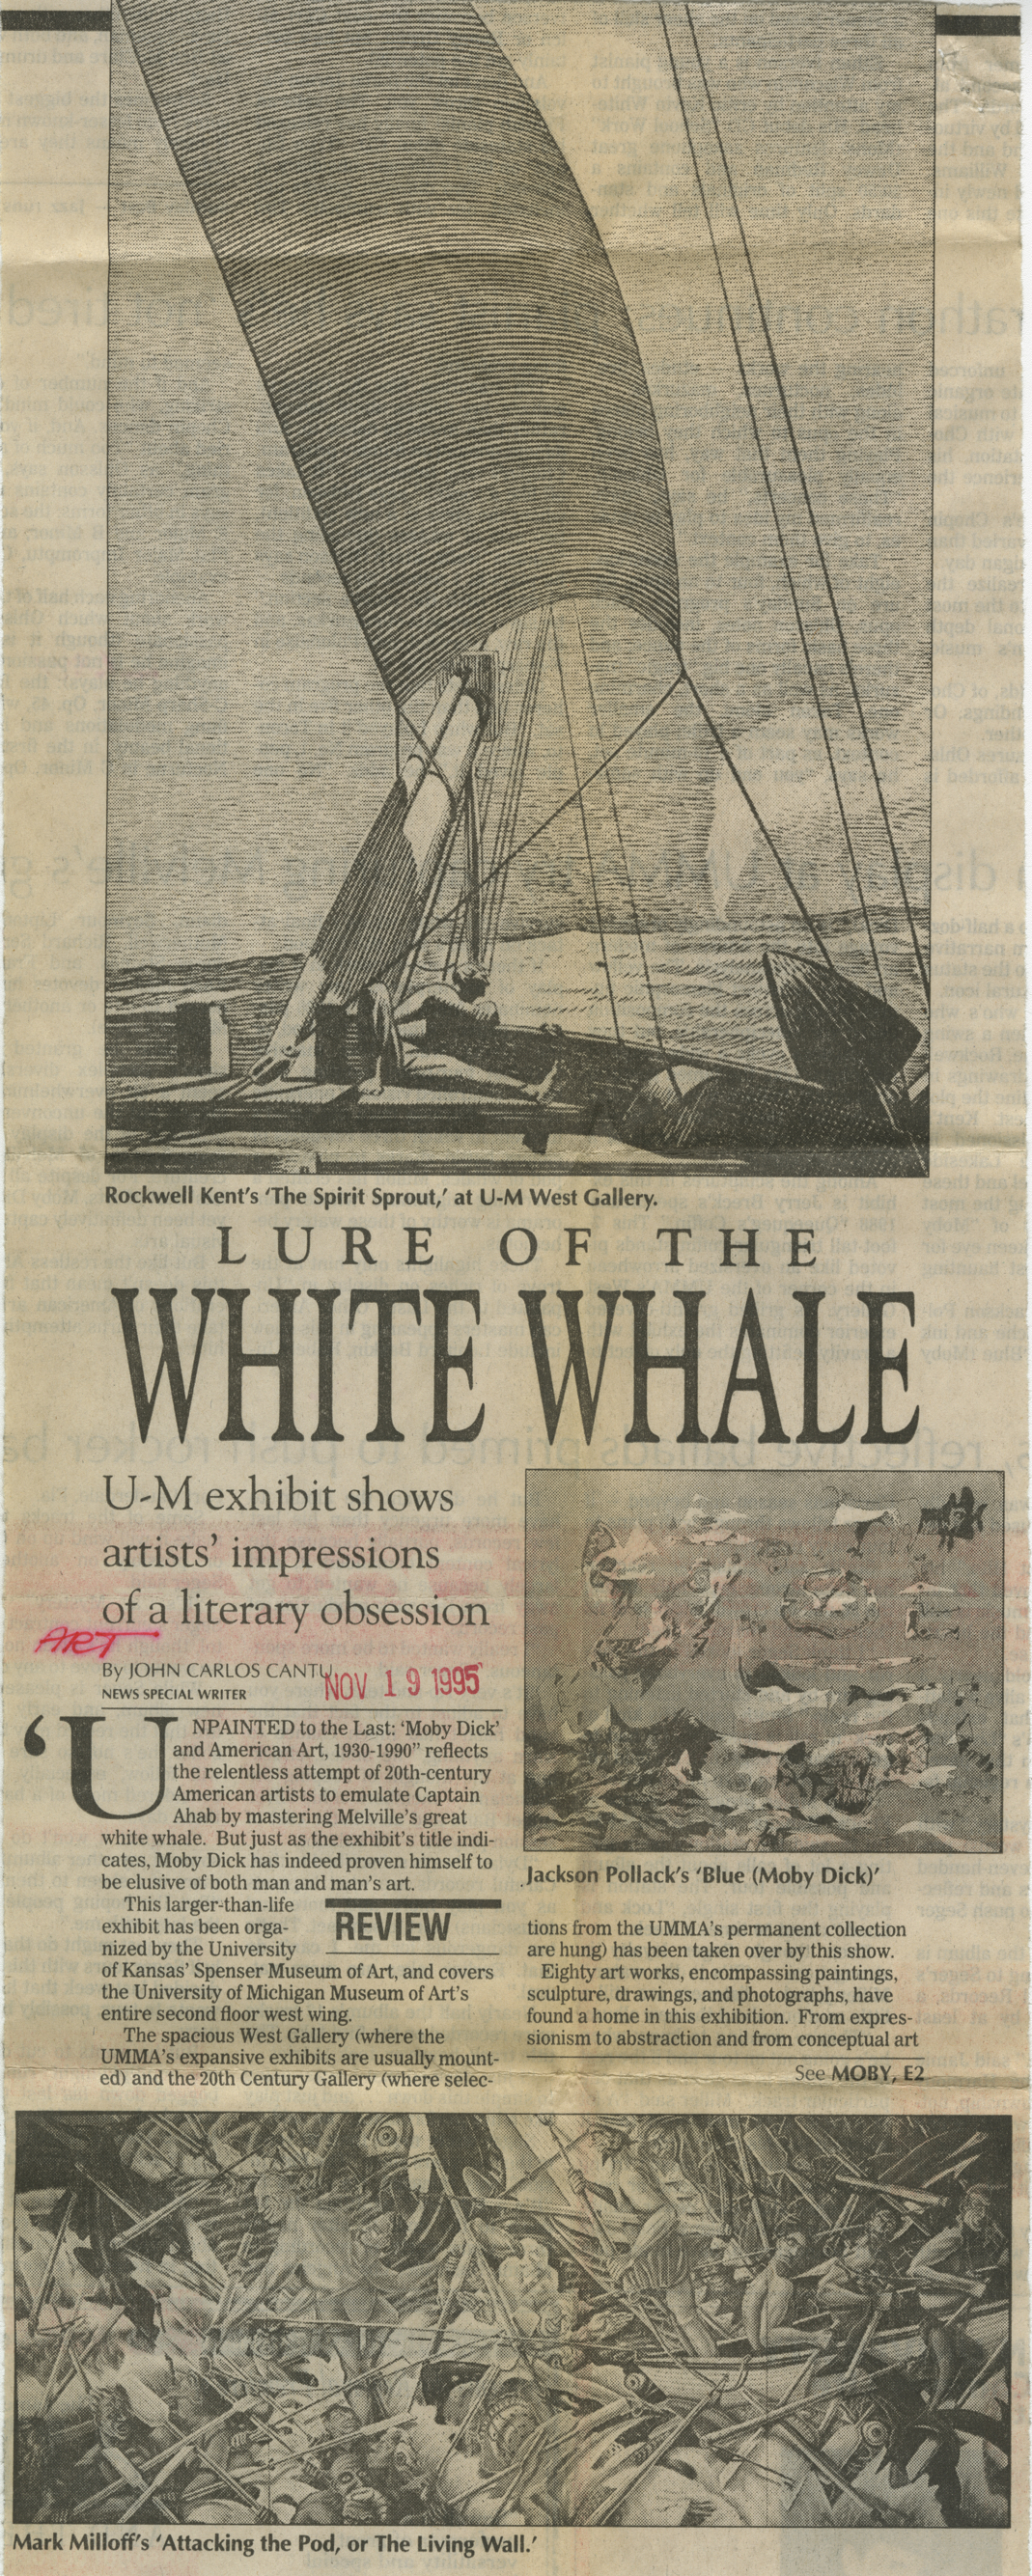 Lure of the White Whale image